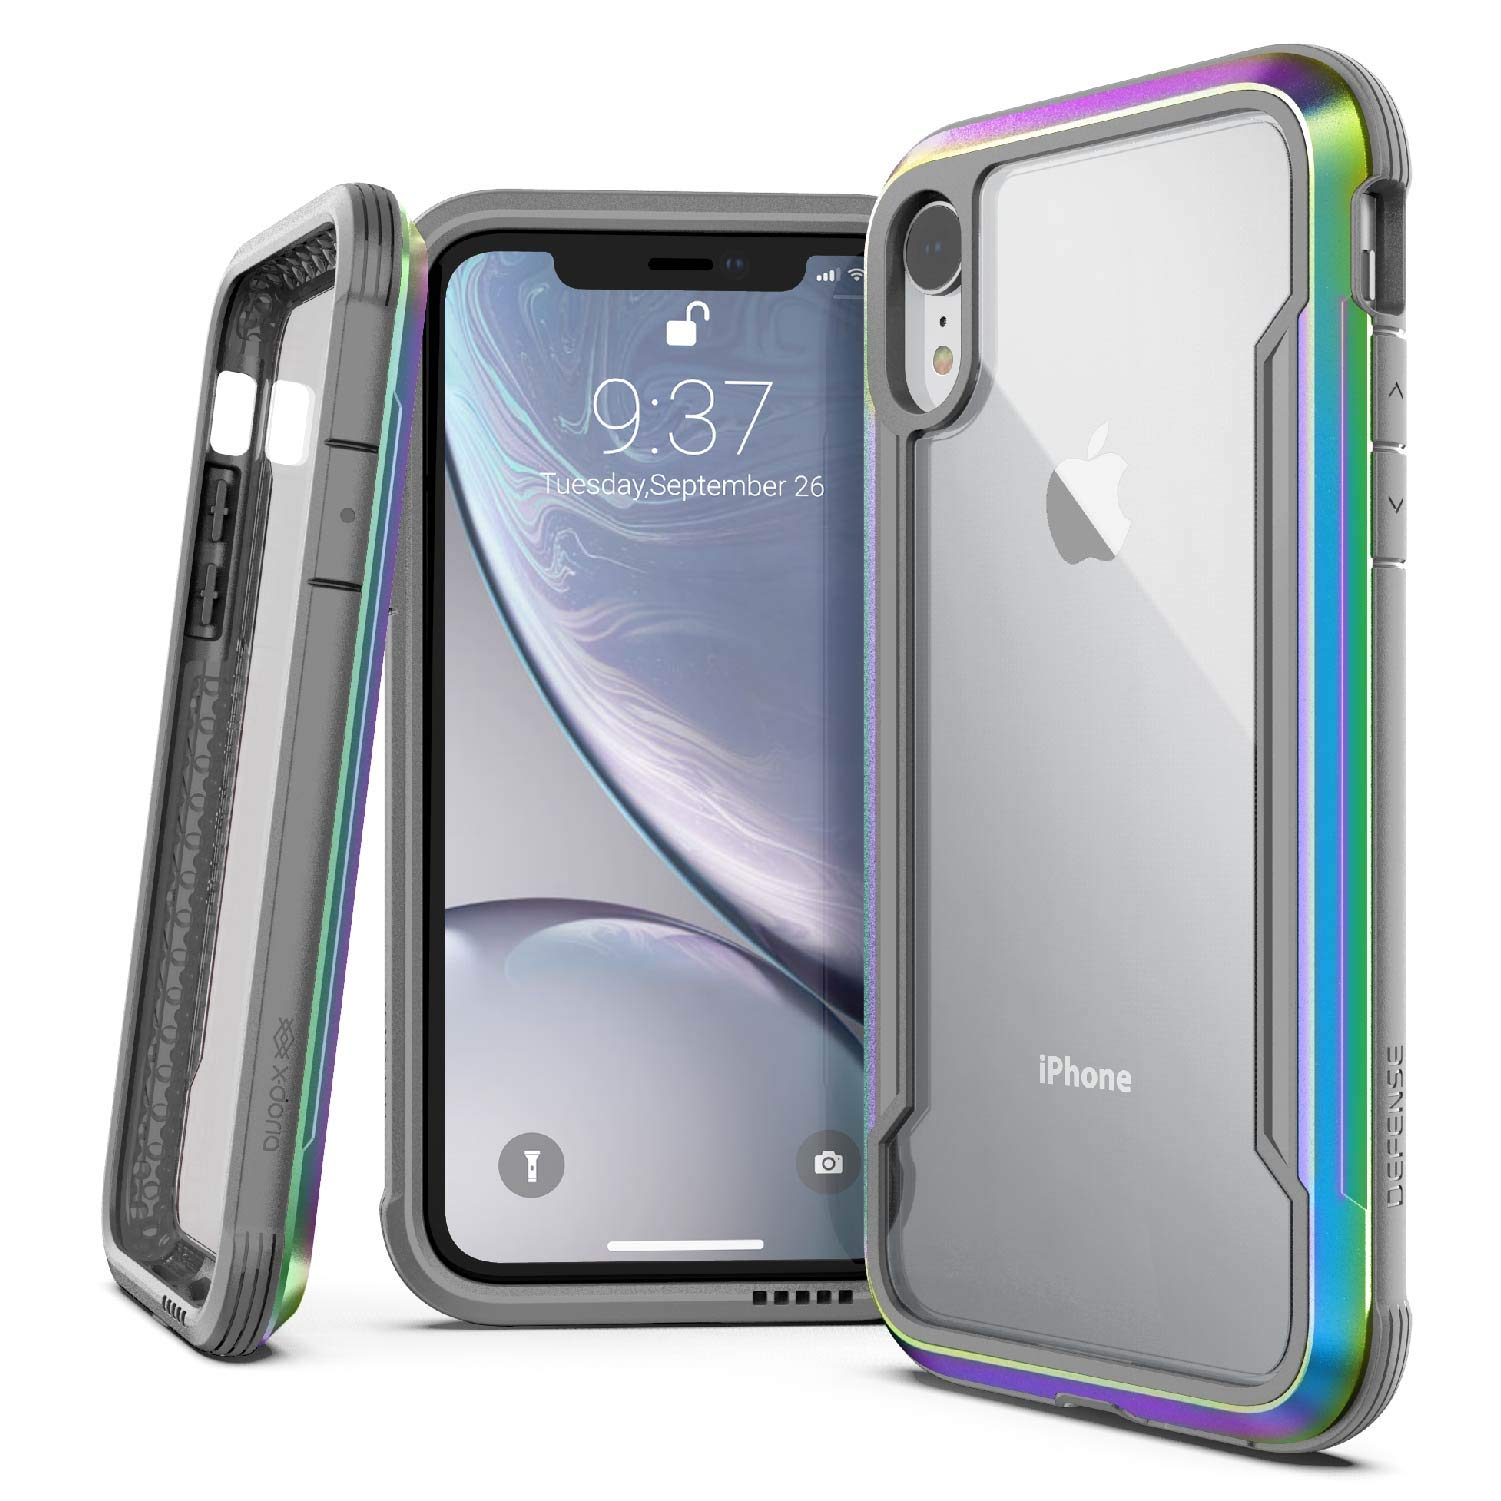 X-Doria Defense Shield Series, iPhone XR Case - Military Grade Drop Tested, Anodized Aluminum, TPU, and Polycarbonate Protective Case for Apple iPhone XR, 6.1 Inch LCD Screen (Iridescent) by X-Doria